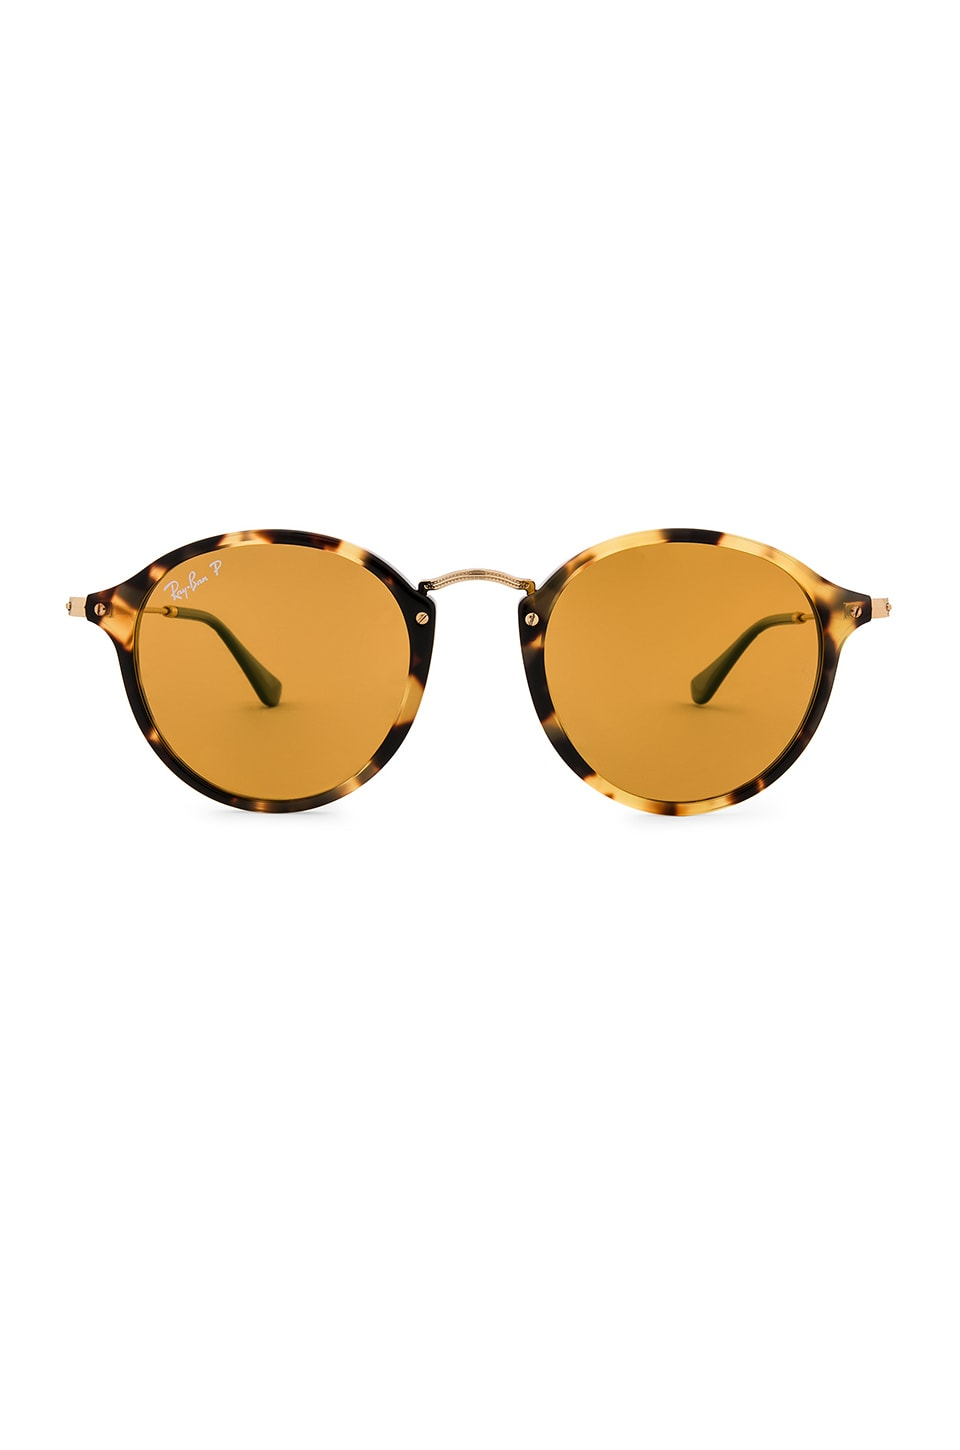 Ray-Ban Round Fleck Pop in Yellow Havana, Gold & Yellow